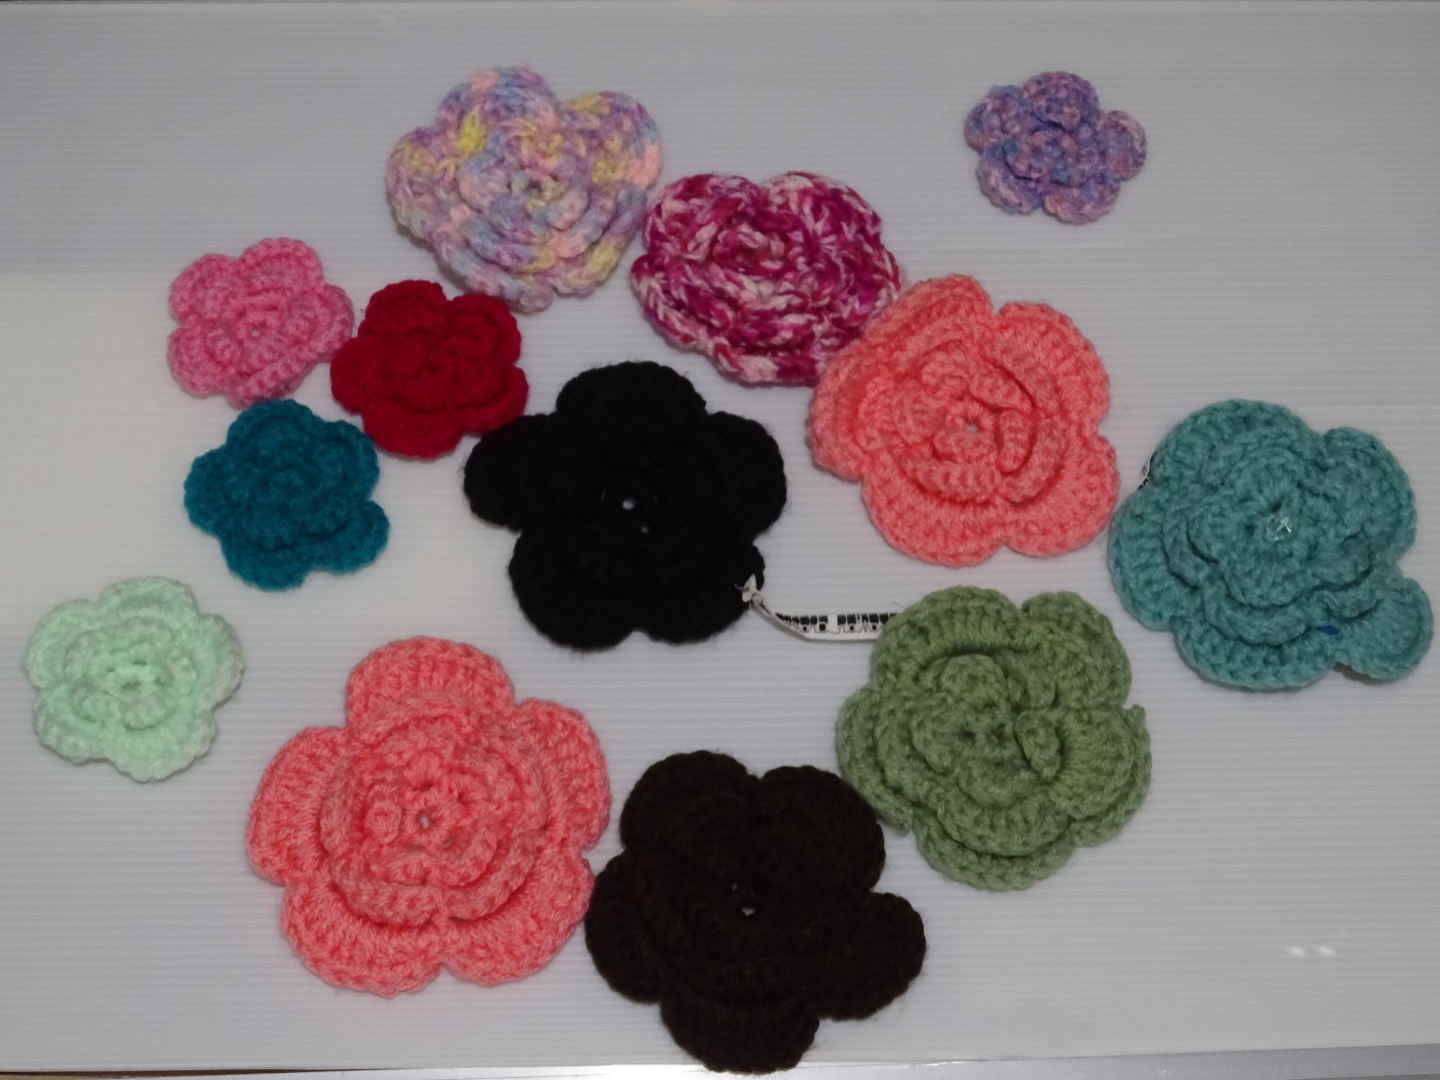 crocheted-irish-rose